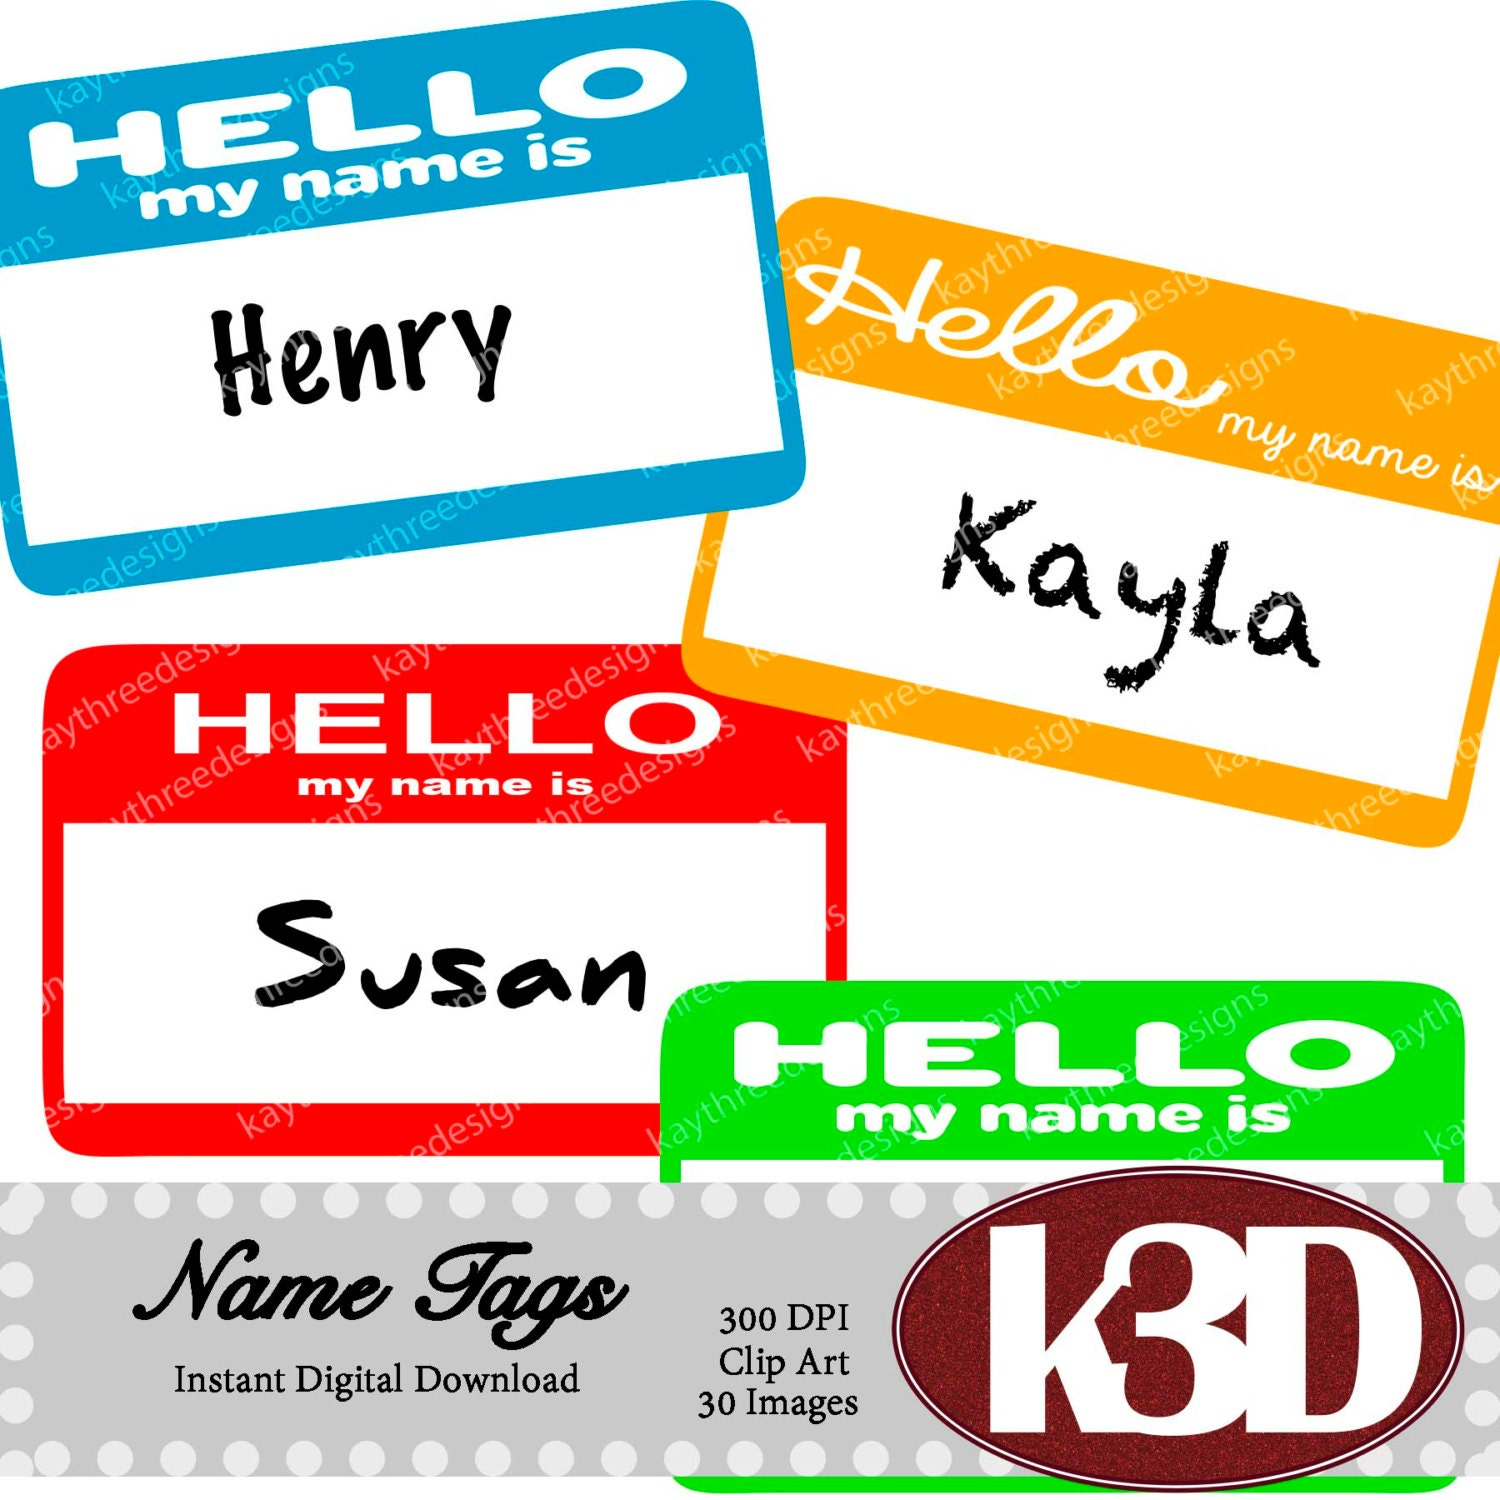 name tags hello my name is name tags rainbow name tags clipart rh etsystudio com name clipart images name clipart free